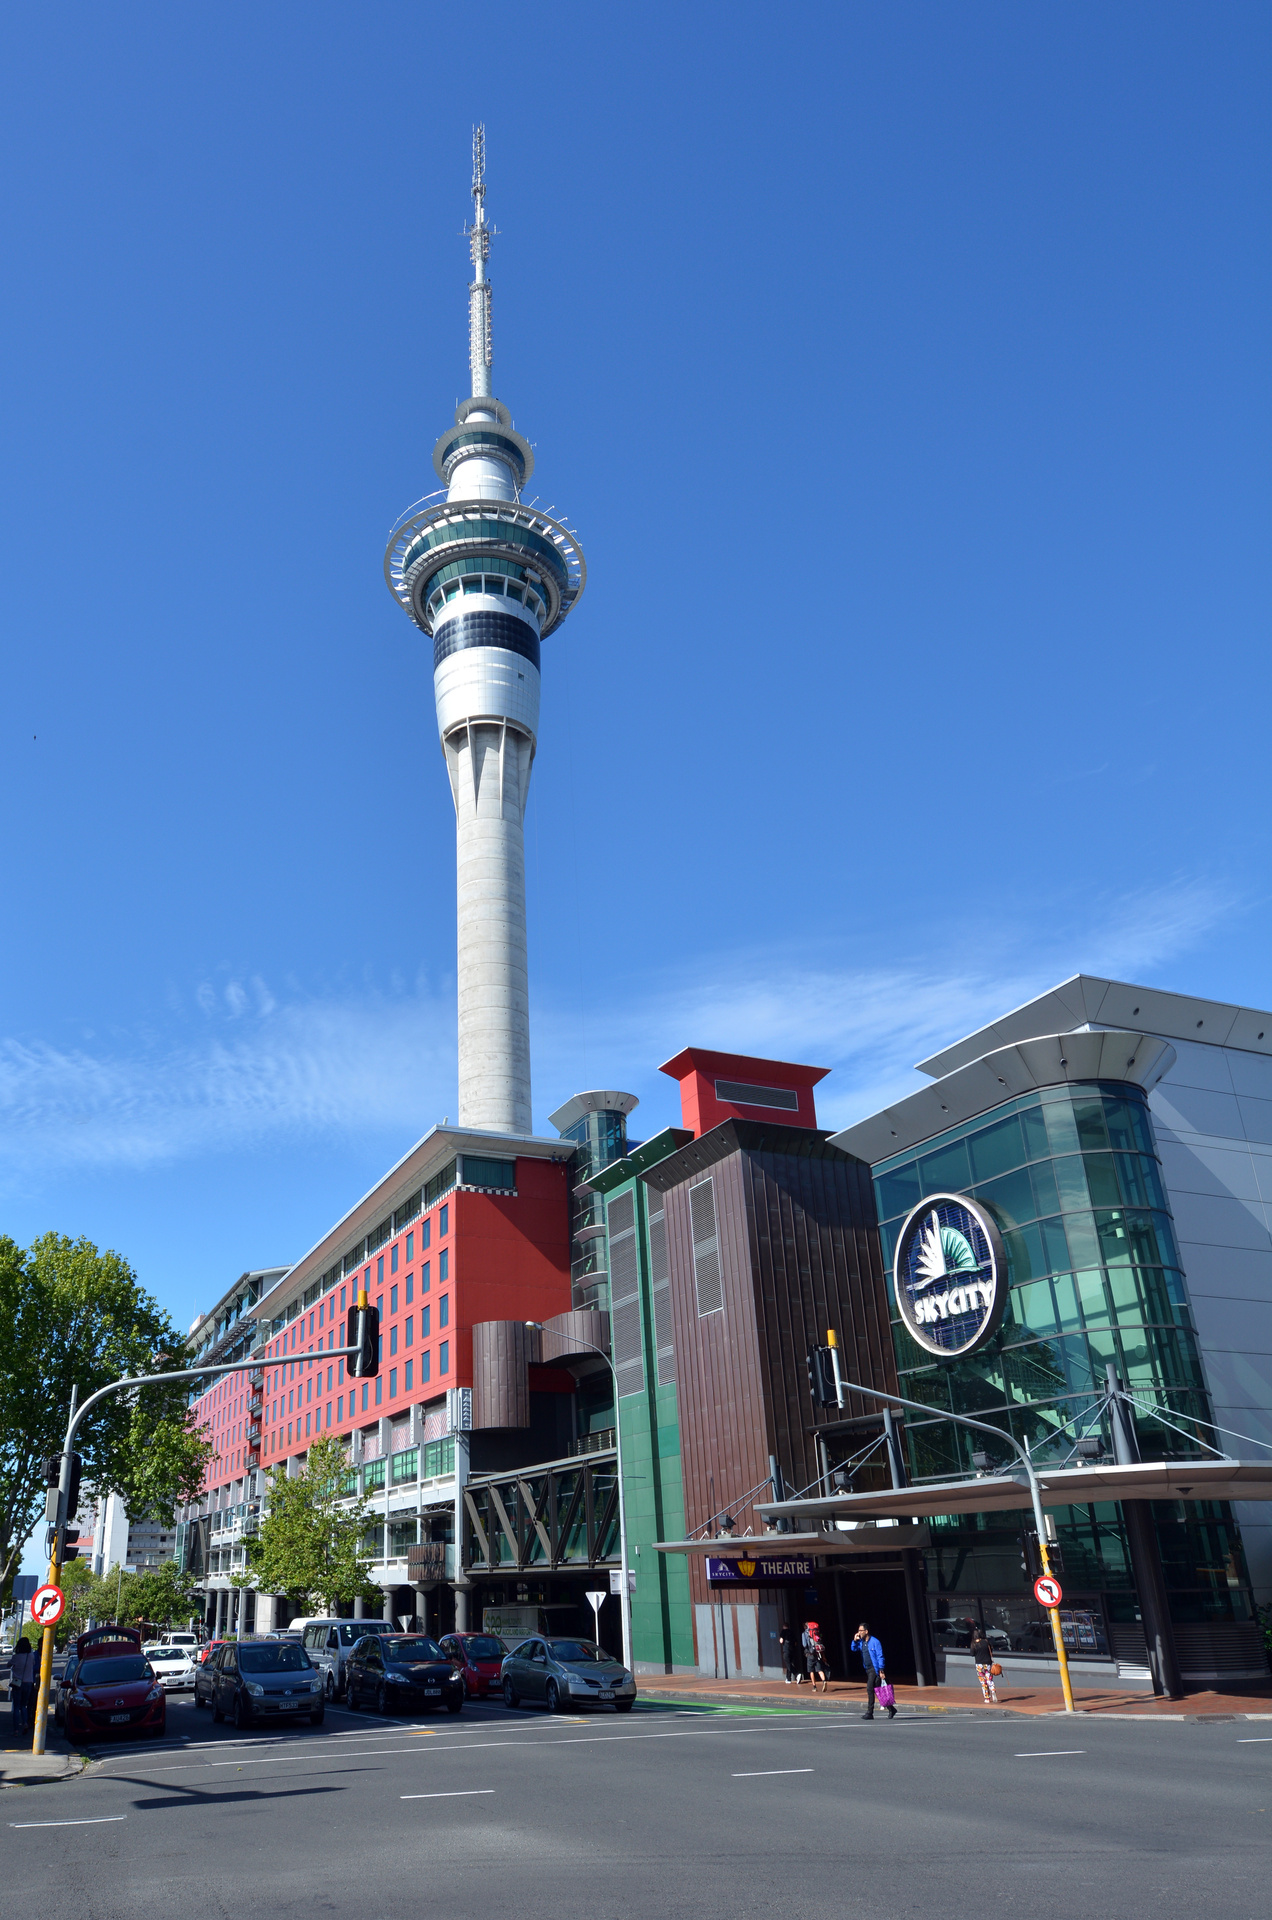 Baby dies after 'tragic accident' at Auckland's SkyCity